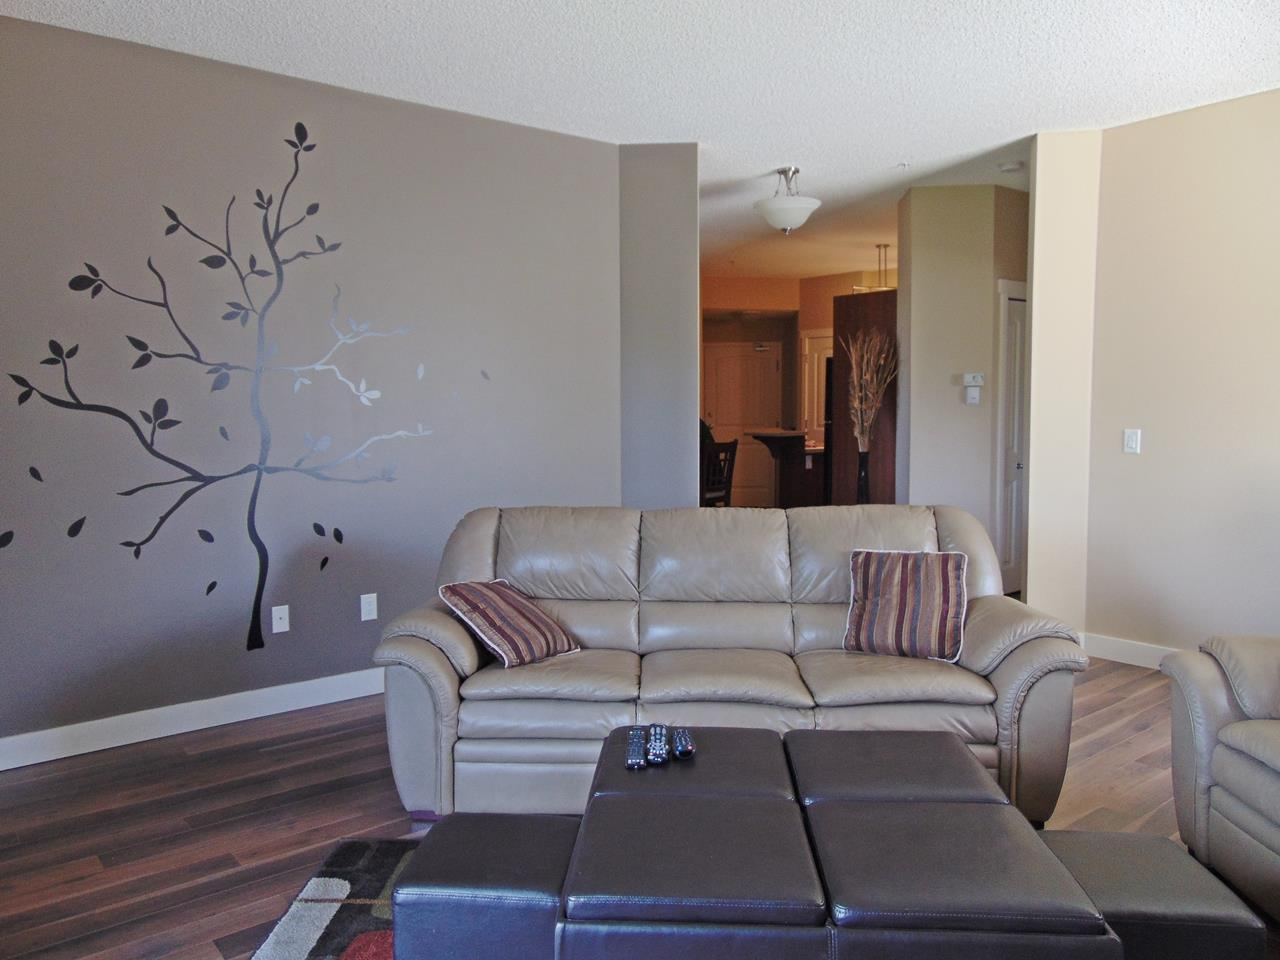 Photo 12: 203 4922 52 Street: Gibbons Condo for sale : MLS® # E4071334